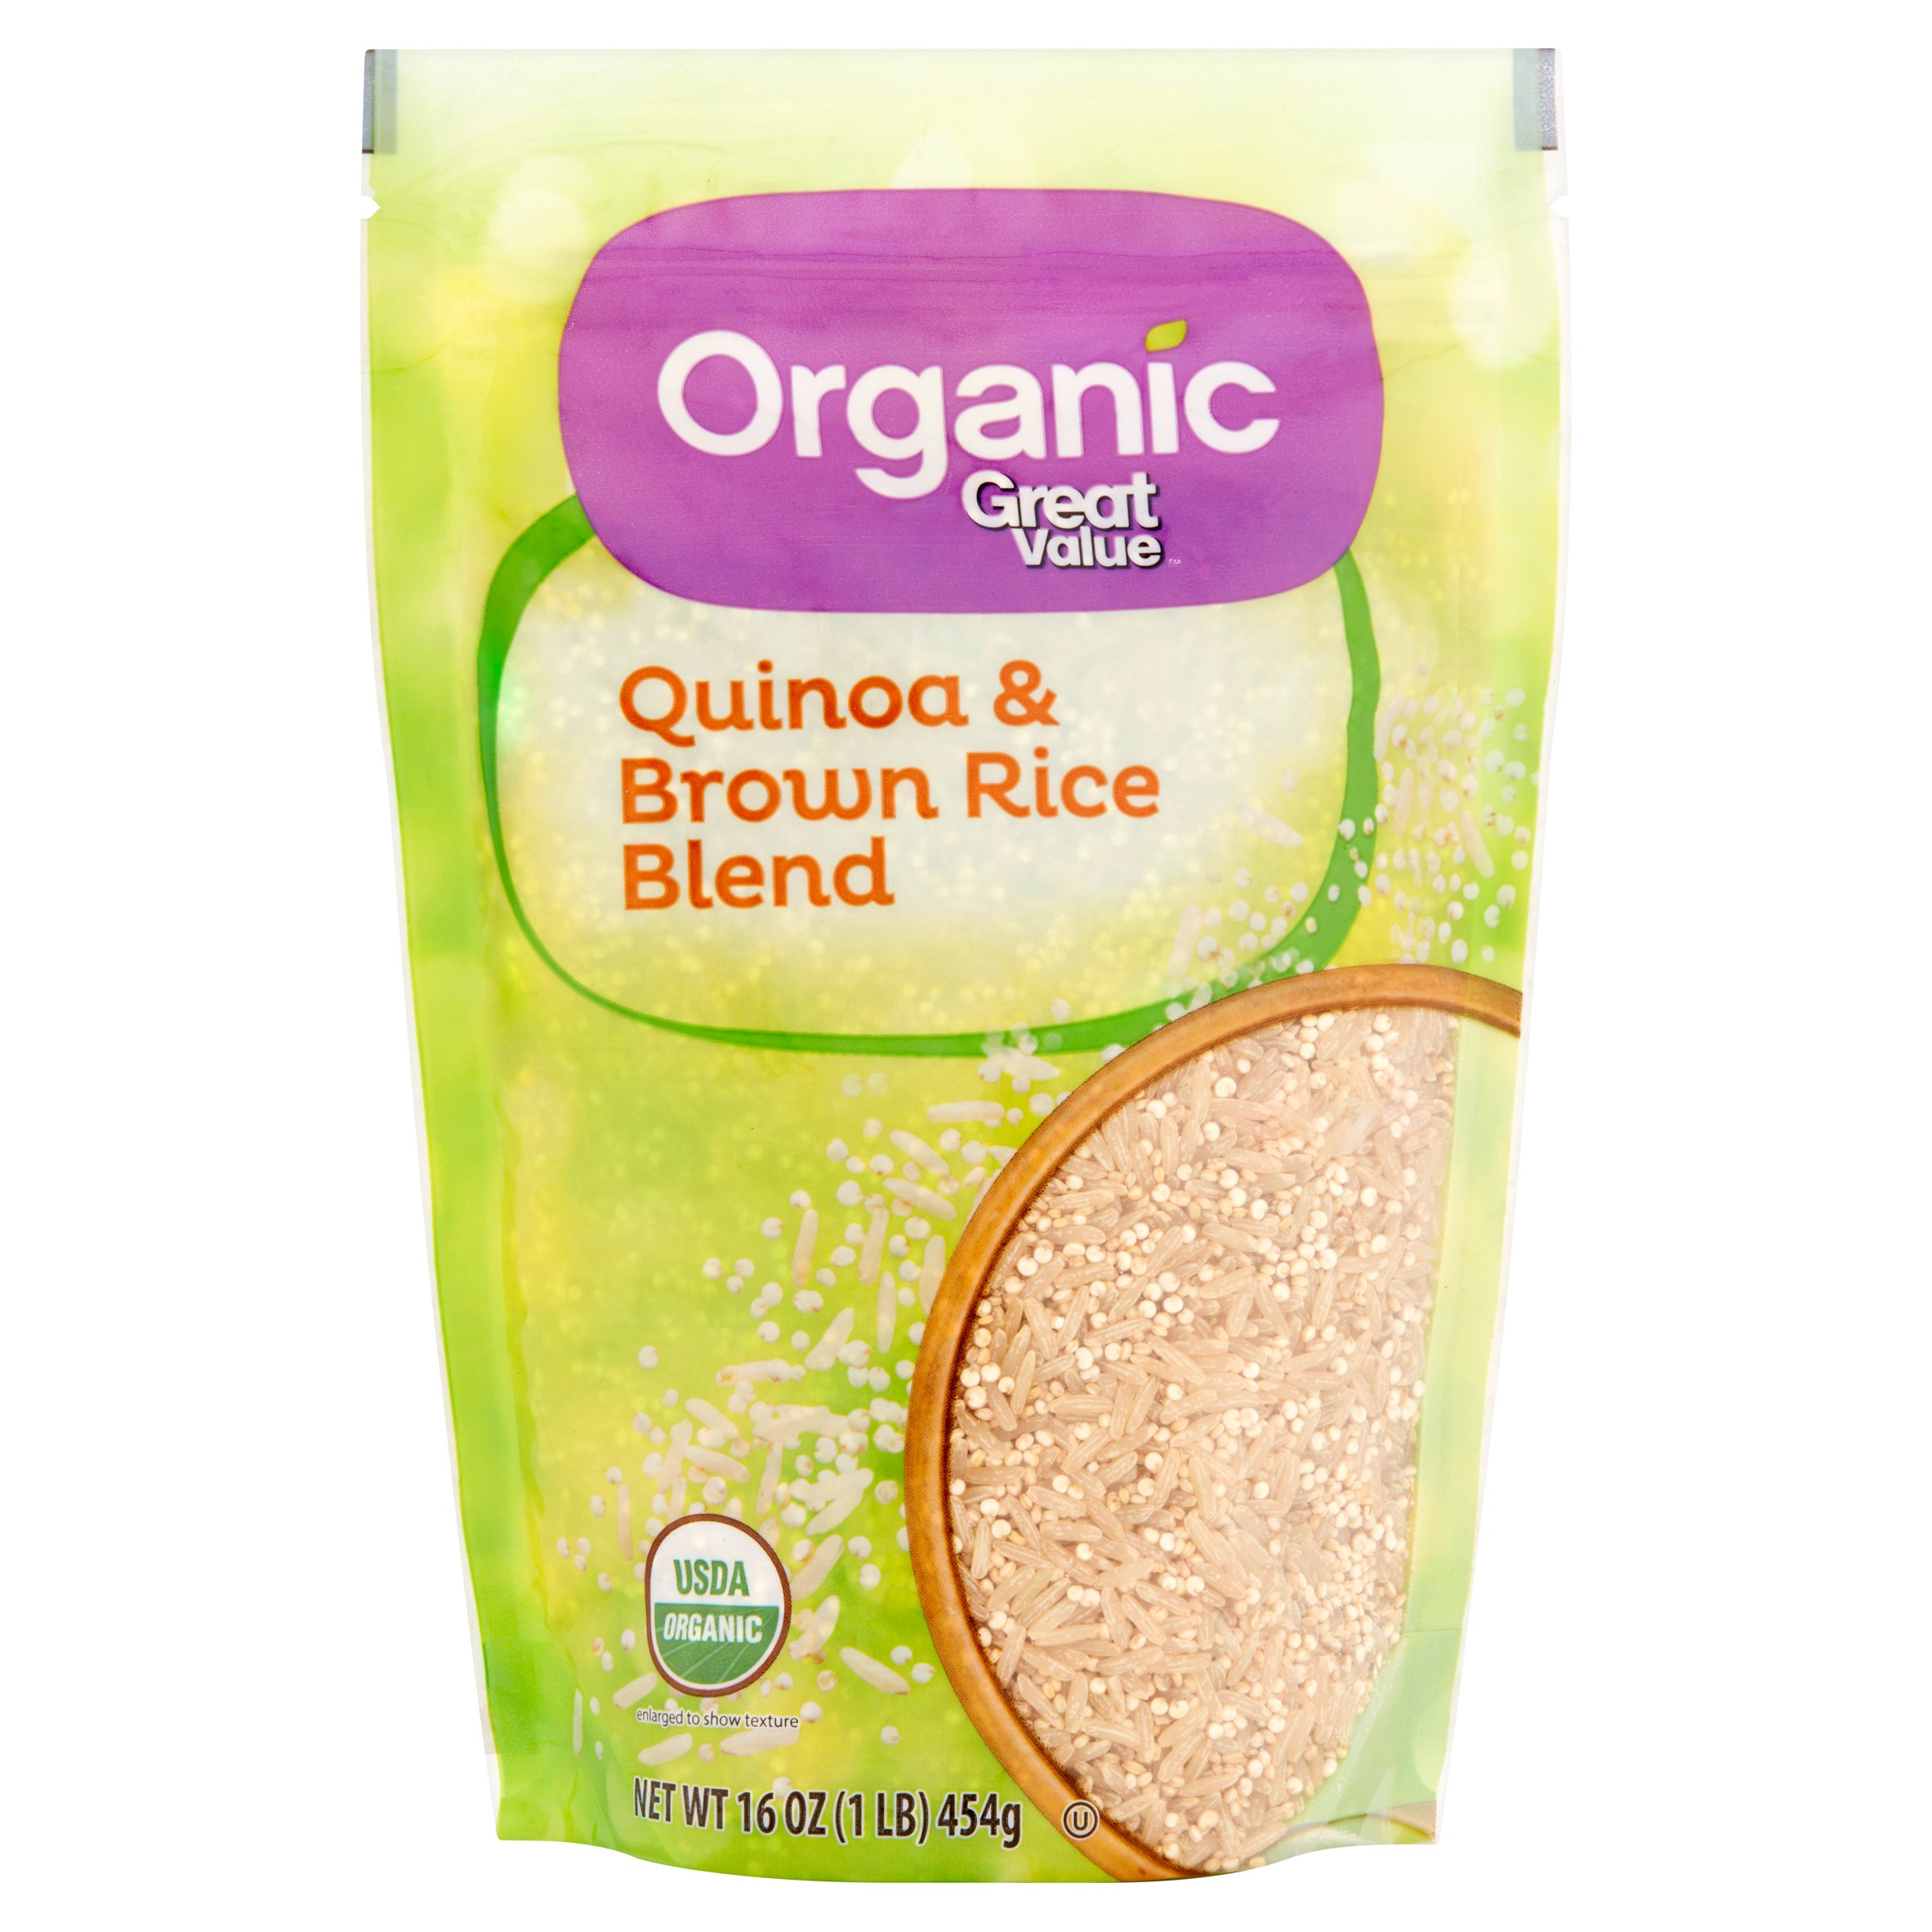 Great Value Organic Quinoa & Brown Rice Blend, 16 Oz. by Great Value Organic